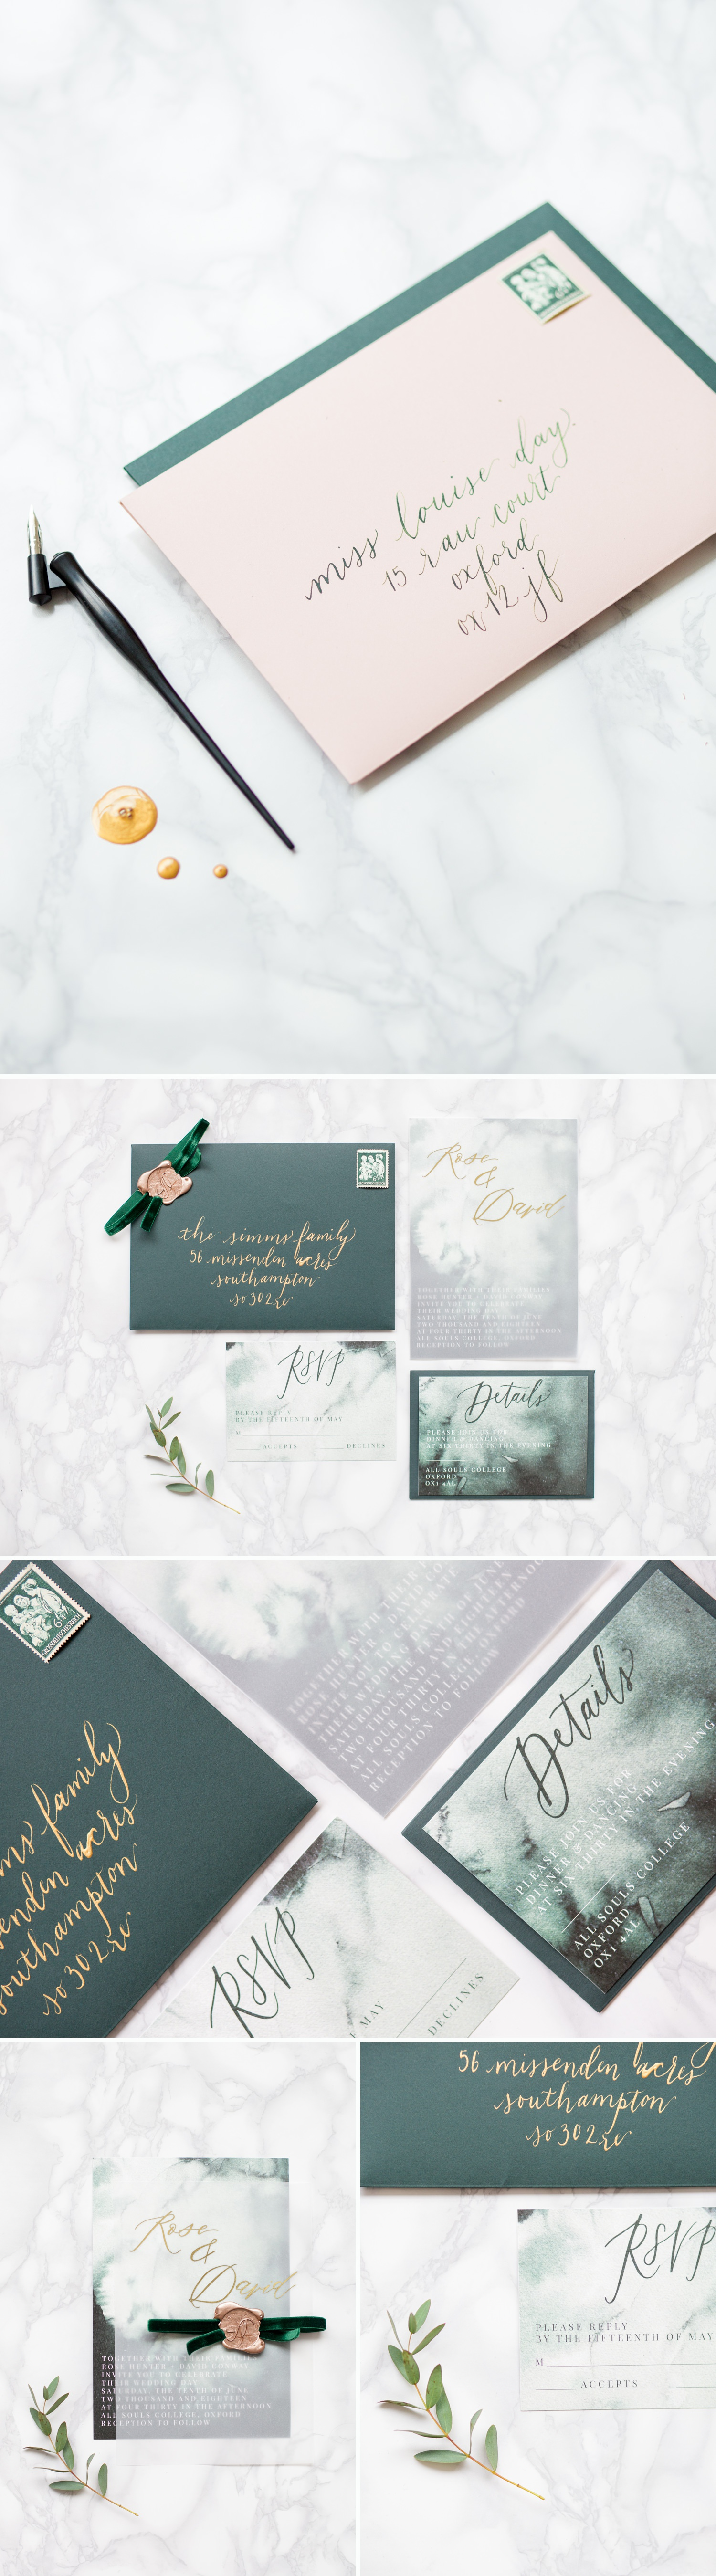 Personal Branding photoshoot - dark green wedding stationery suite